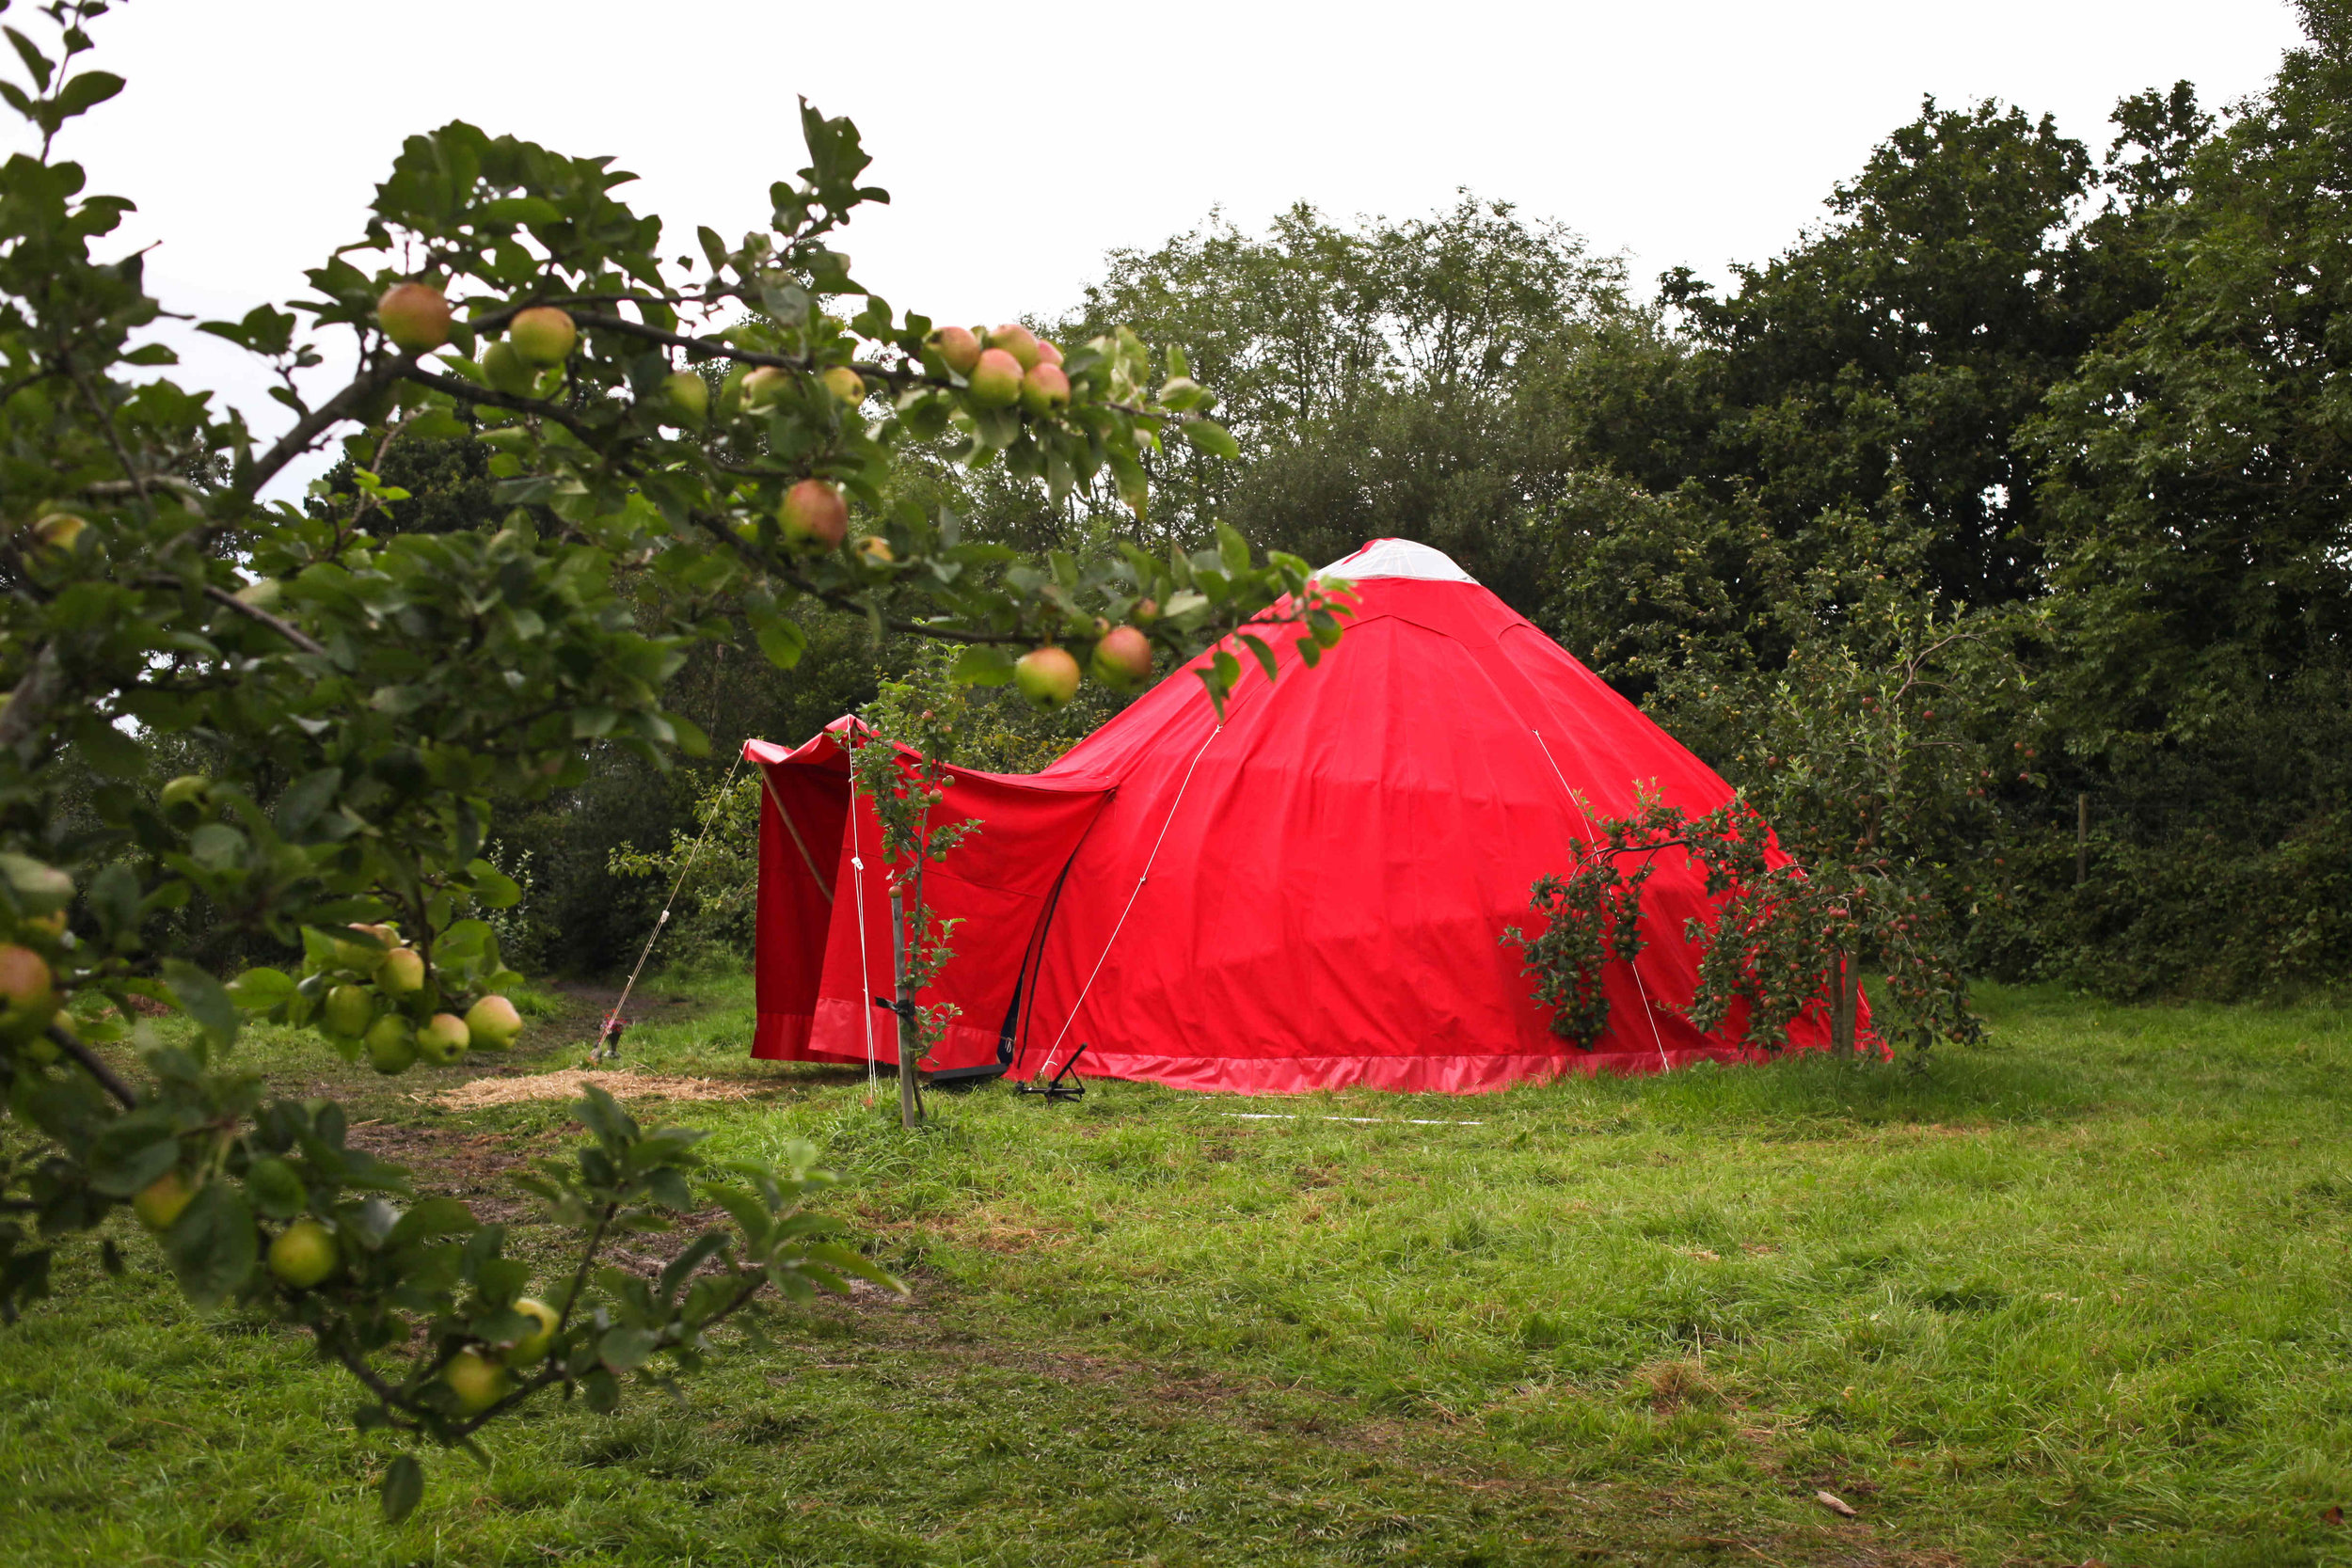 "THE RED ALACHIGH   The Red Alachigh was created in 2012 as a space for sacred sanctuary, ceremony, celebration, myth, music, crafts, arts and the exploration of women's mysteries.  The inspiration for the tent came from a storytelling at the Wood Sisters Mystery School based on Anita Diamant's novel ""The Red Tent"".  The alachigh is a northern Iranian nomadic tent and this one was built by about 50 women with support from all quarters to raise the money for the canvas and other materials.  The tent has toured to many festivals offering meditation, quiet space, storytelling, crafts, music, dance, poetry and more. It is held by a council of women who are delighted to bring it to the first Oxford Storytelling Festival."